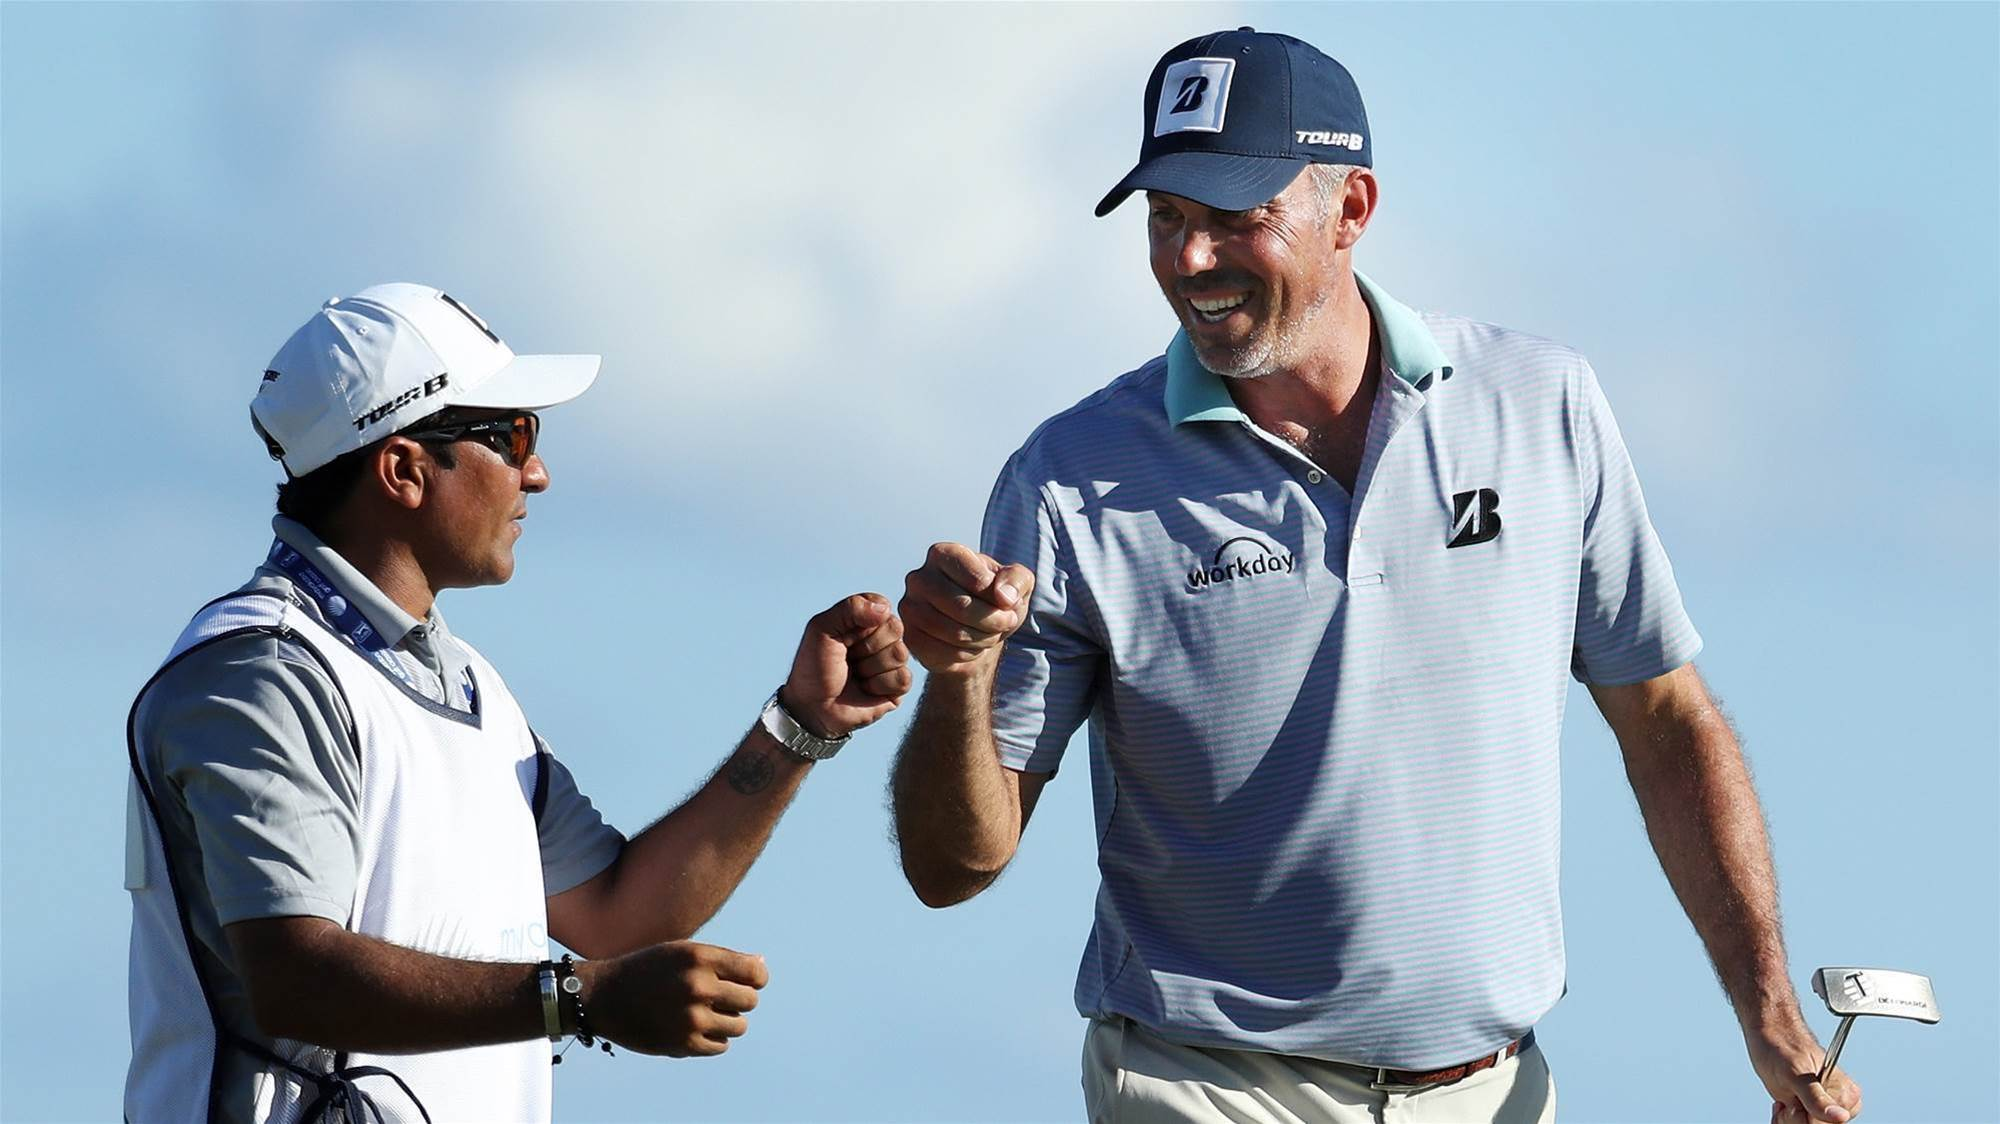 'Sorry' Kuchar agrees to pay caddie $50k